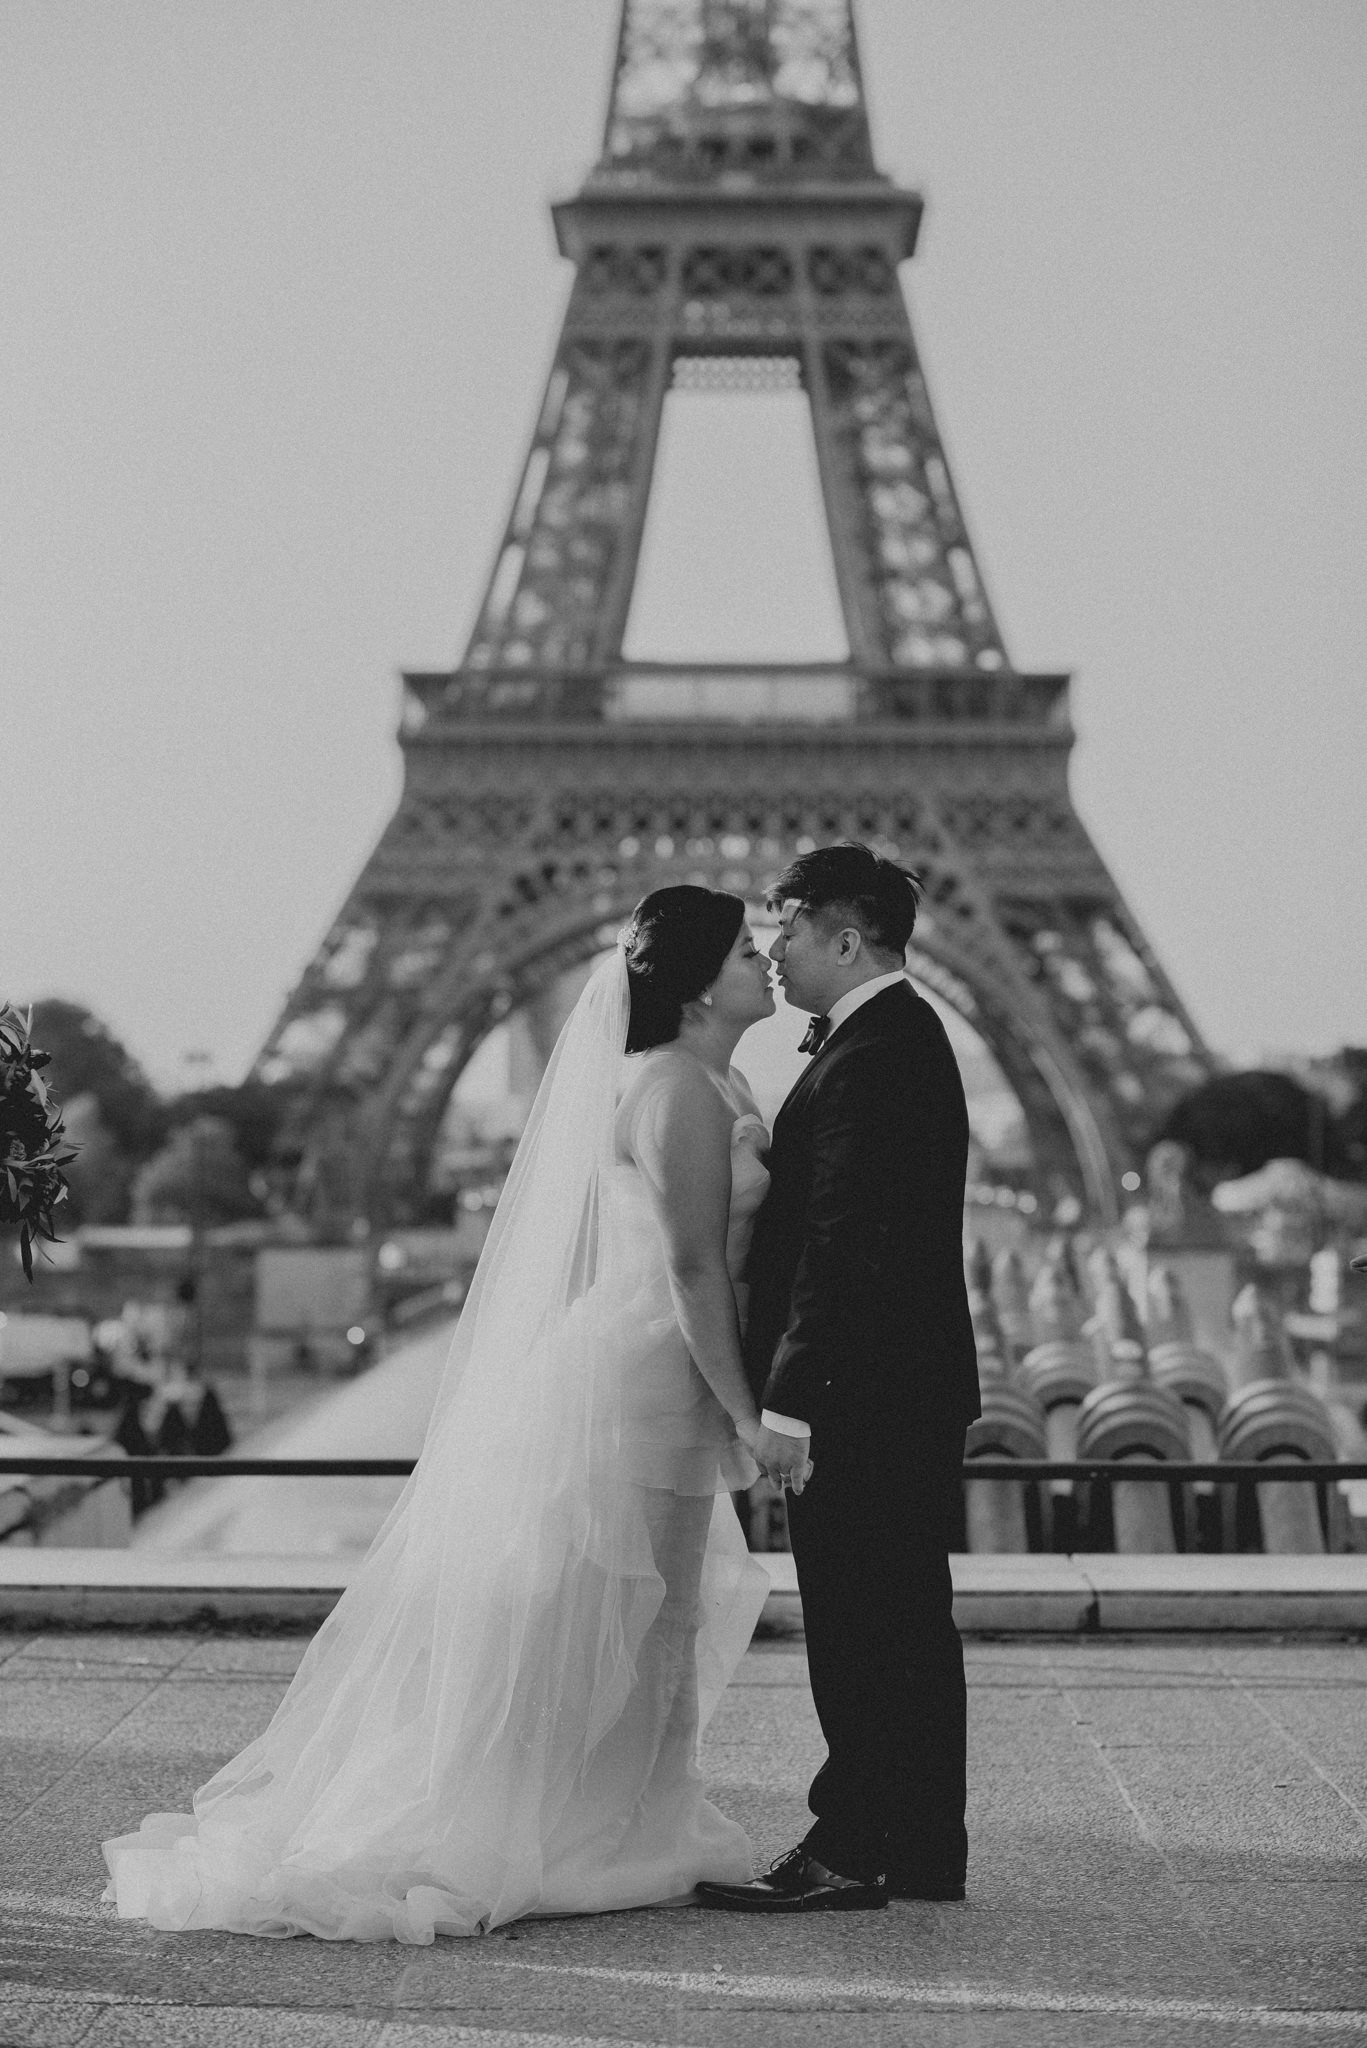 A bride and groom share a first kiss in front of the Eiffel Tower